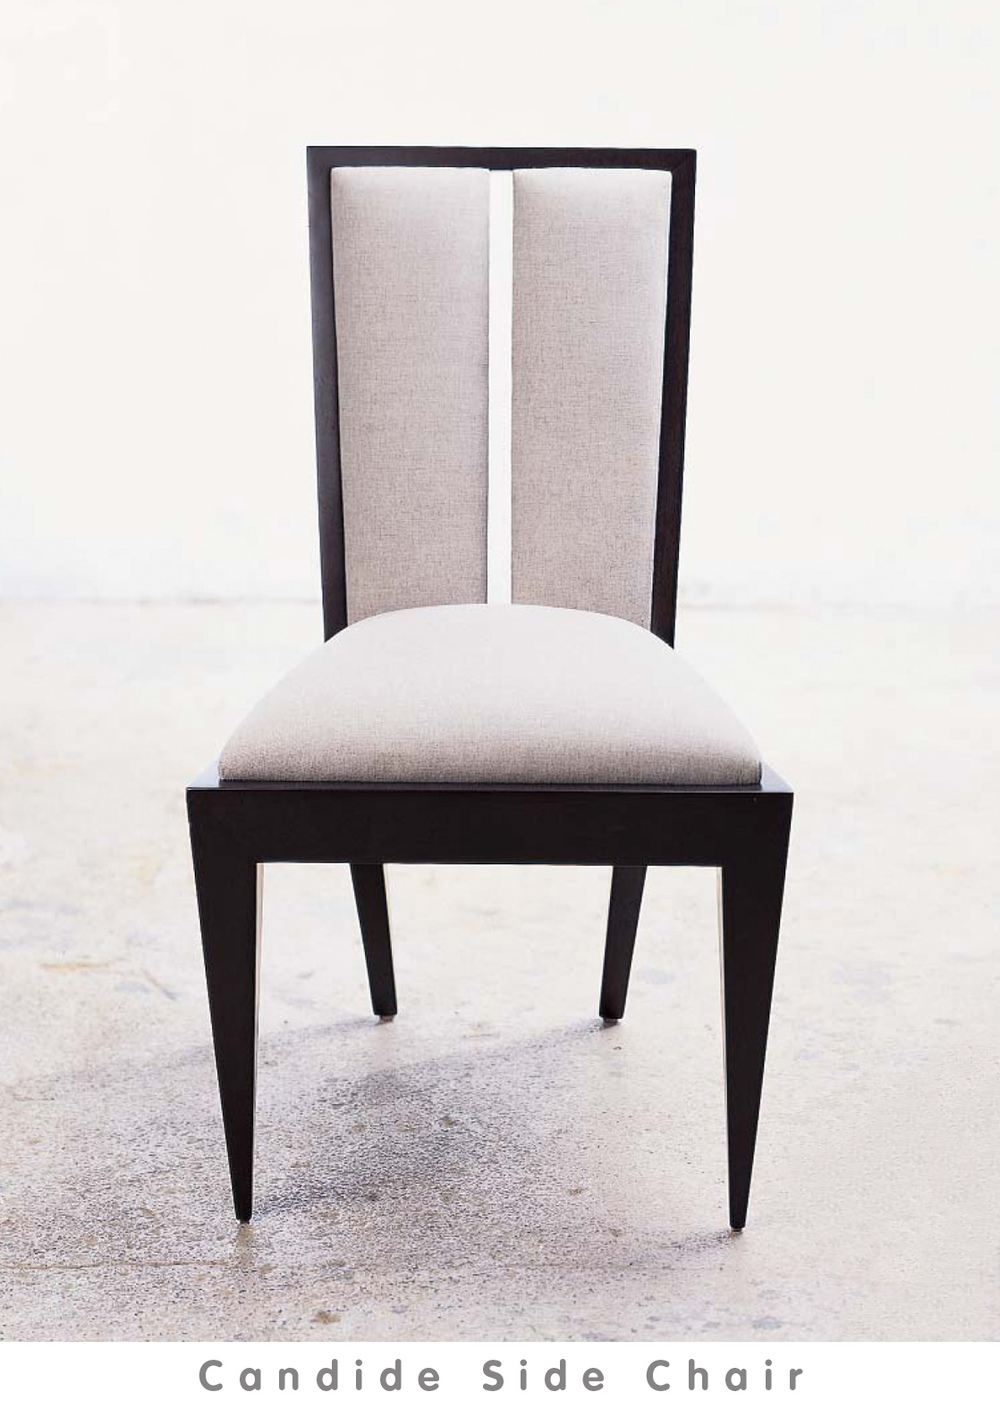 Candide Side Chair